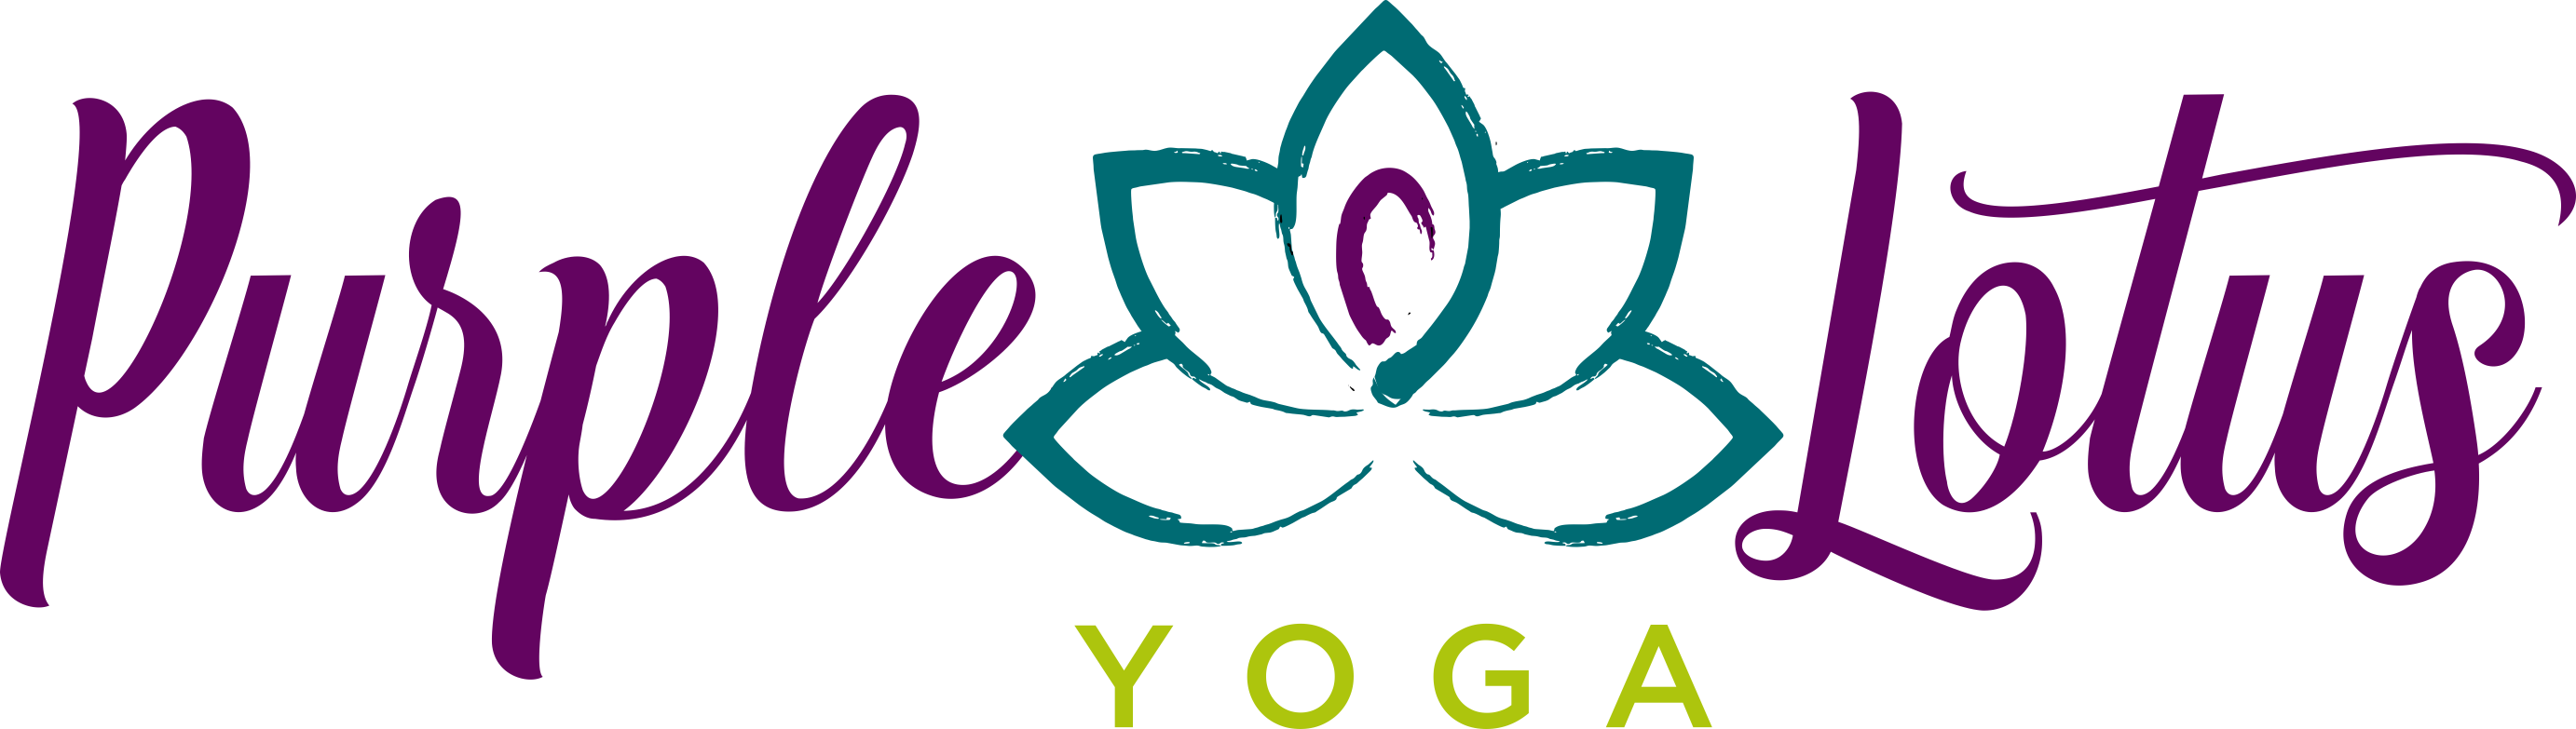 Purple Lotus Yoga